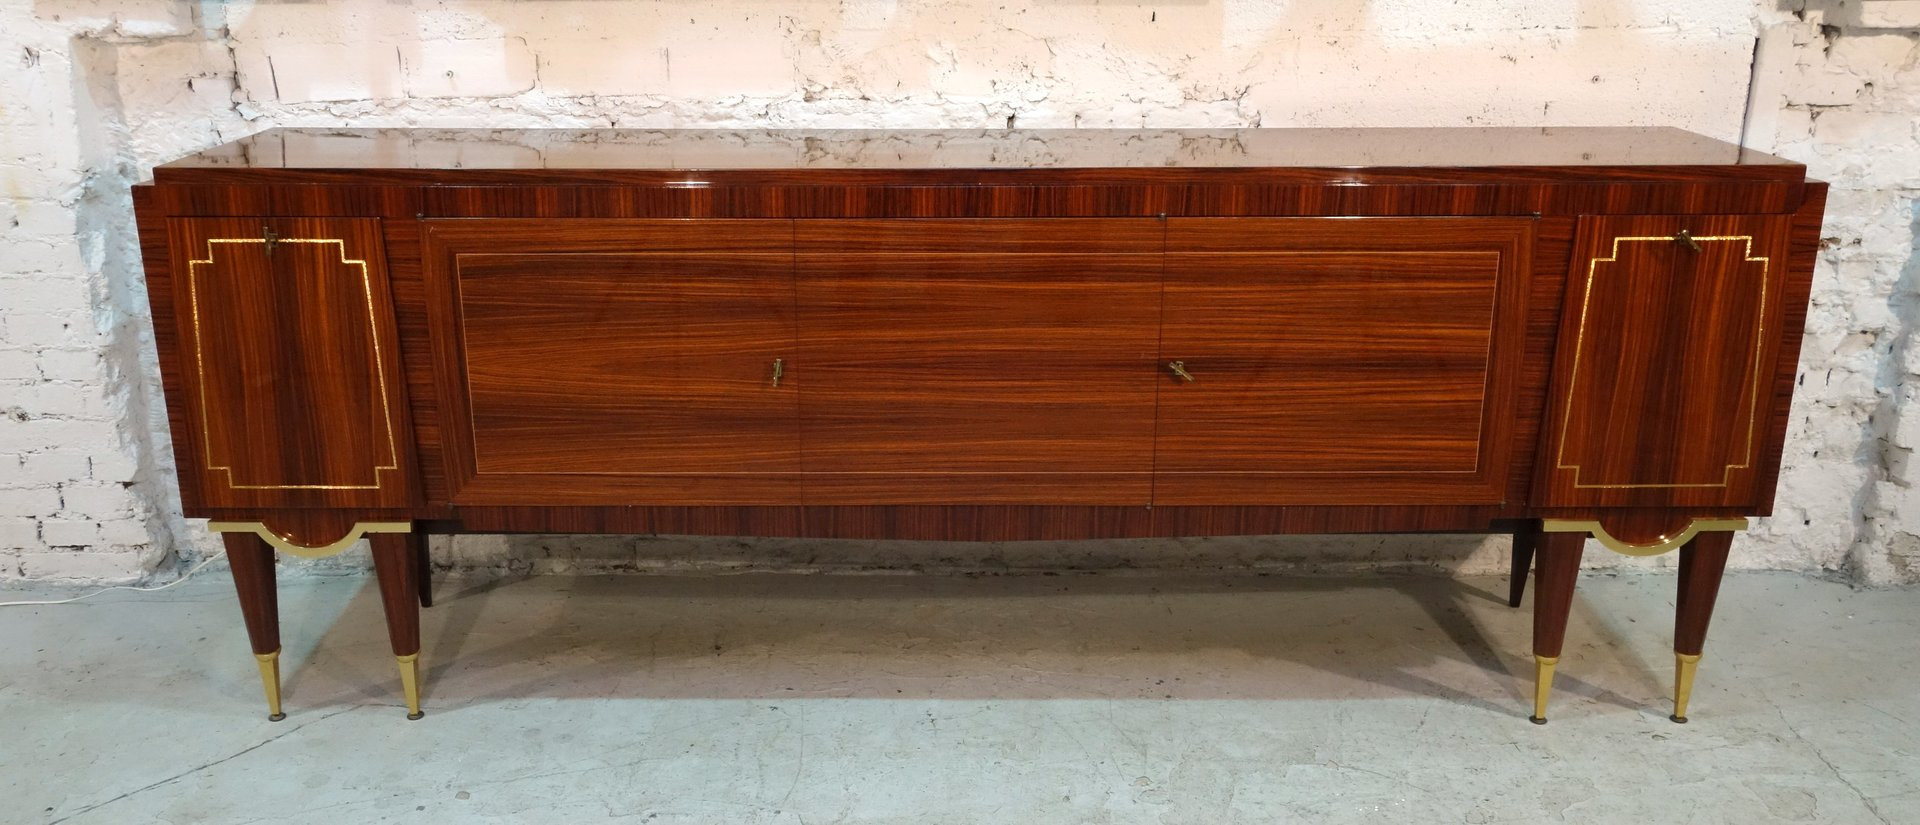 art d co sideboard from meuble triomphe 1940s for sale at pamono. Black Bedroom Furniture Sets. Home Design Ideas